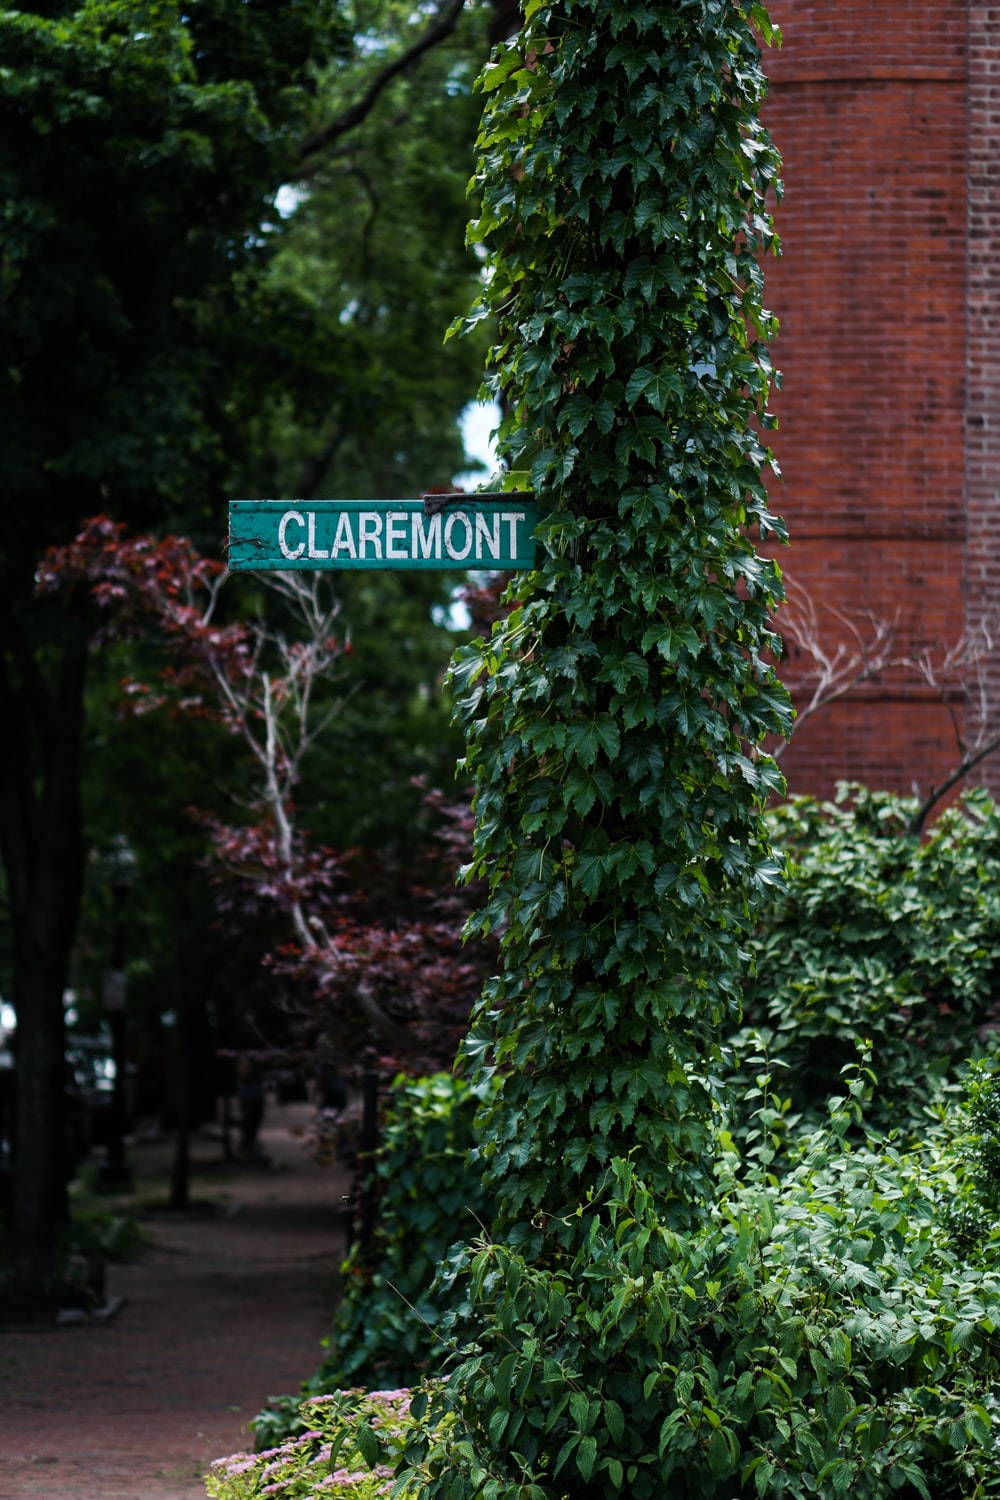 Claremont sign on green leafed plant post